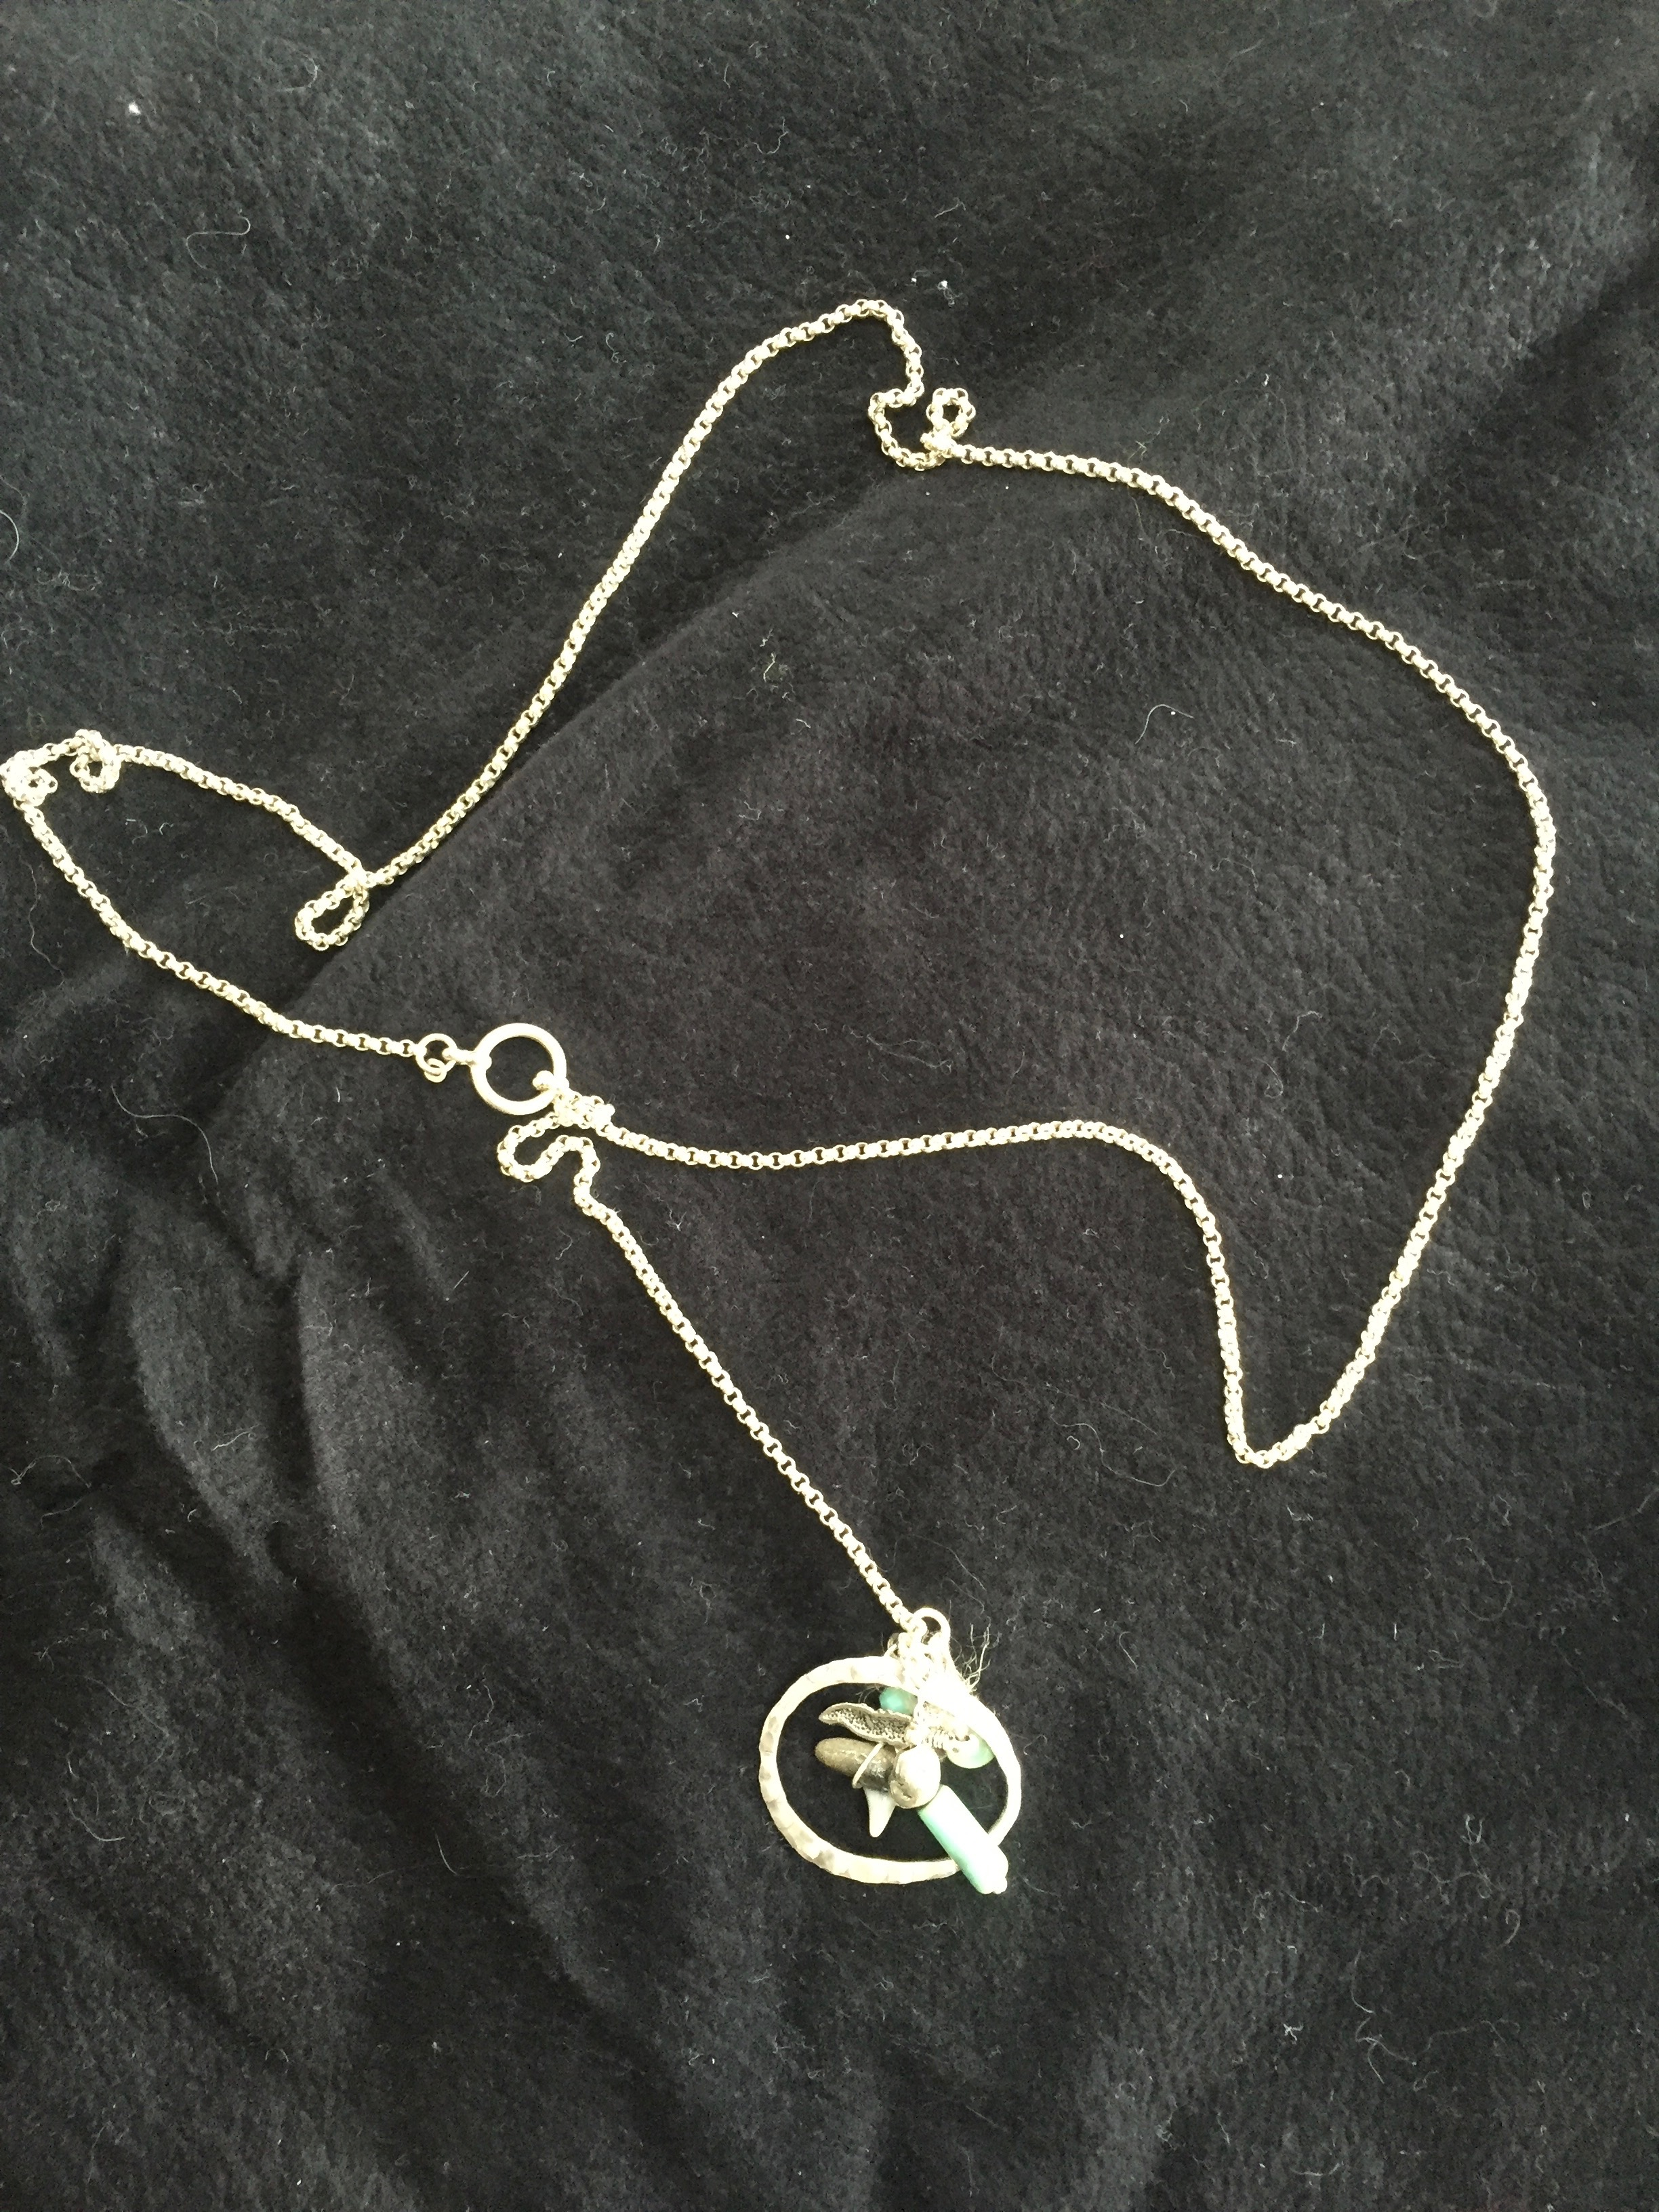 Necklace no.1   $65